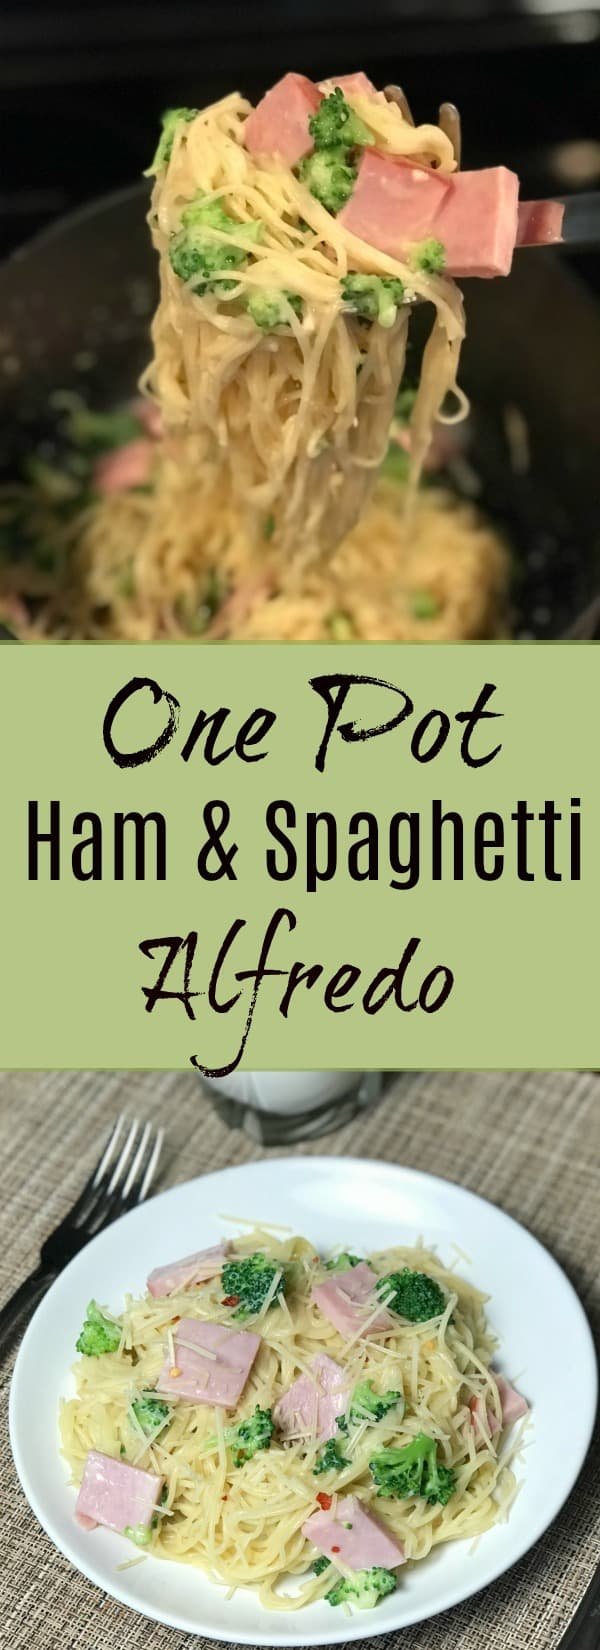 This quick and easy meal is great for kids or busy families. The ham and alfredo adds a nice flavor and the pasta is very filling. Even picky eaters will enjoy this meal that is ready in 15 minutes!